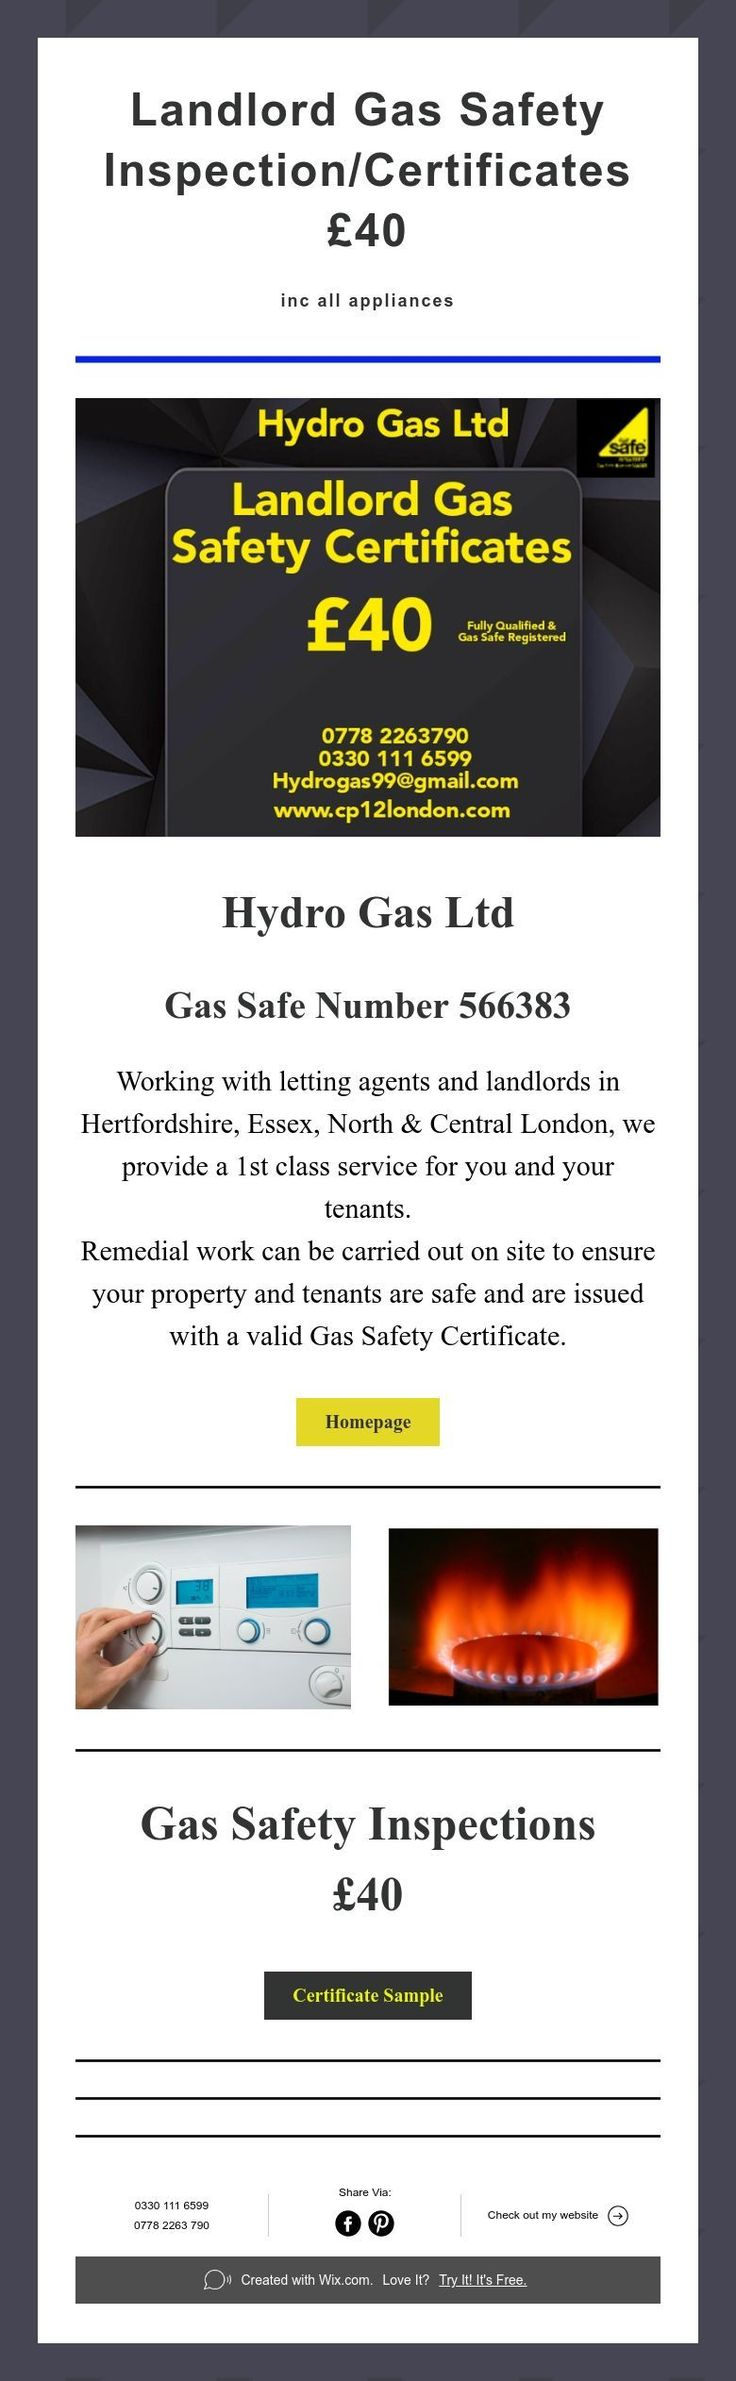 Landlord Gas Safety Inspection/Certificates £40 inc all